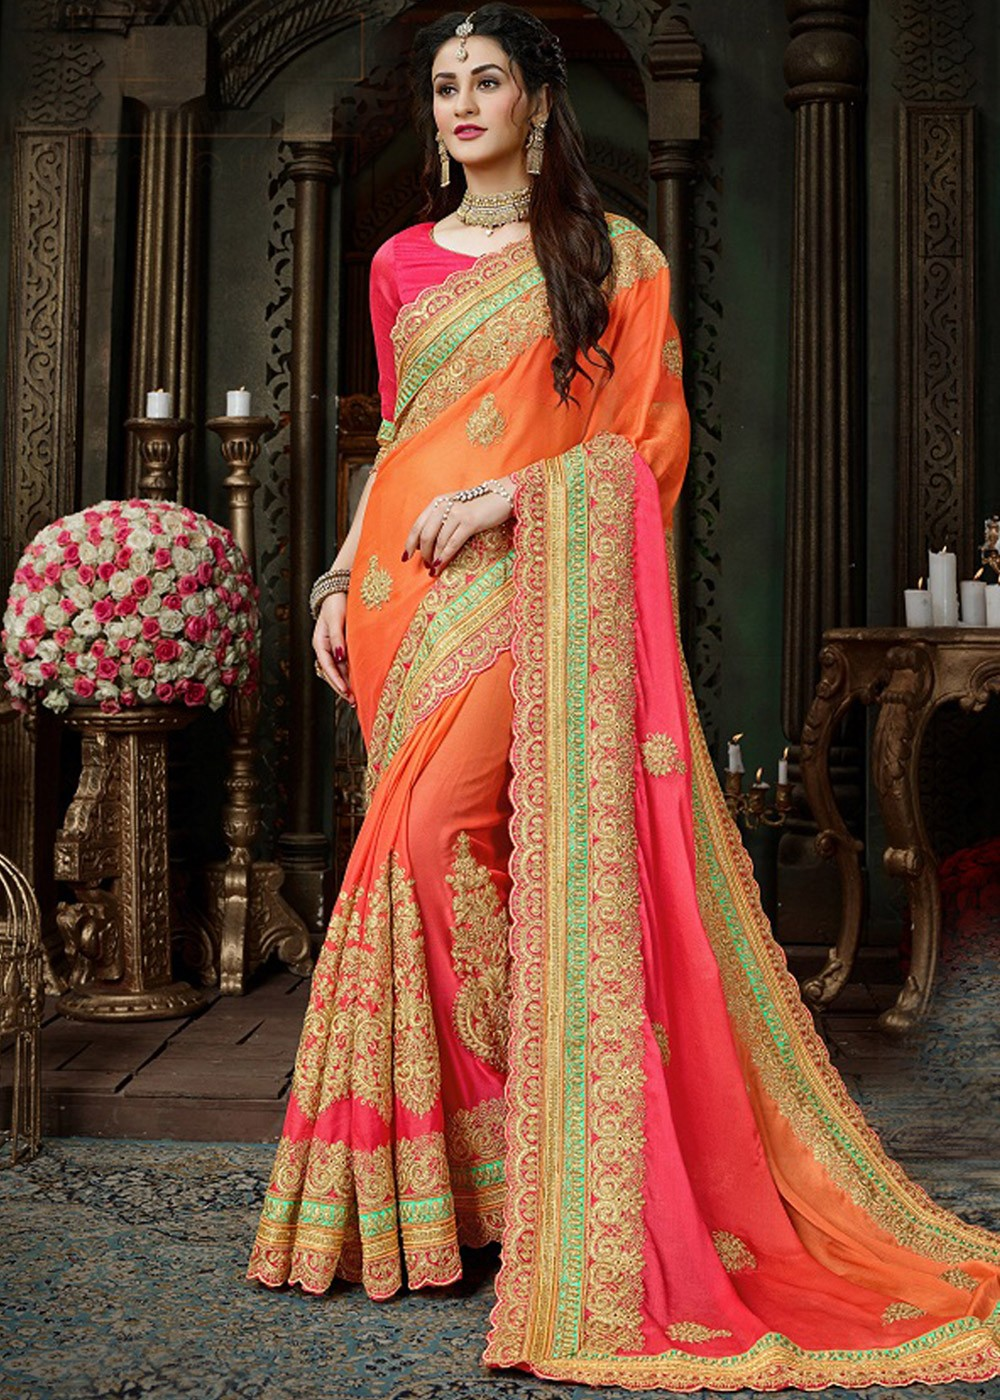 Buy Indian chiffon sarees Online for wedding | free Classified | Free Advertising | free classified ads